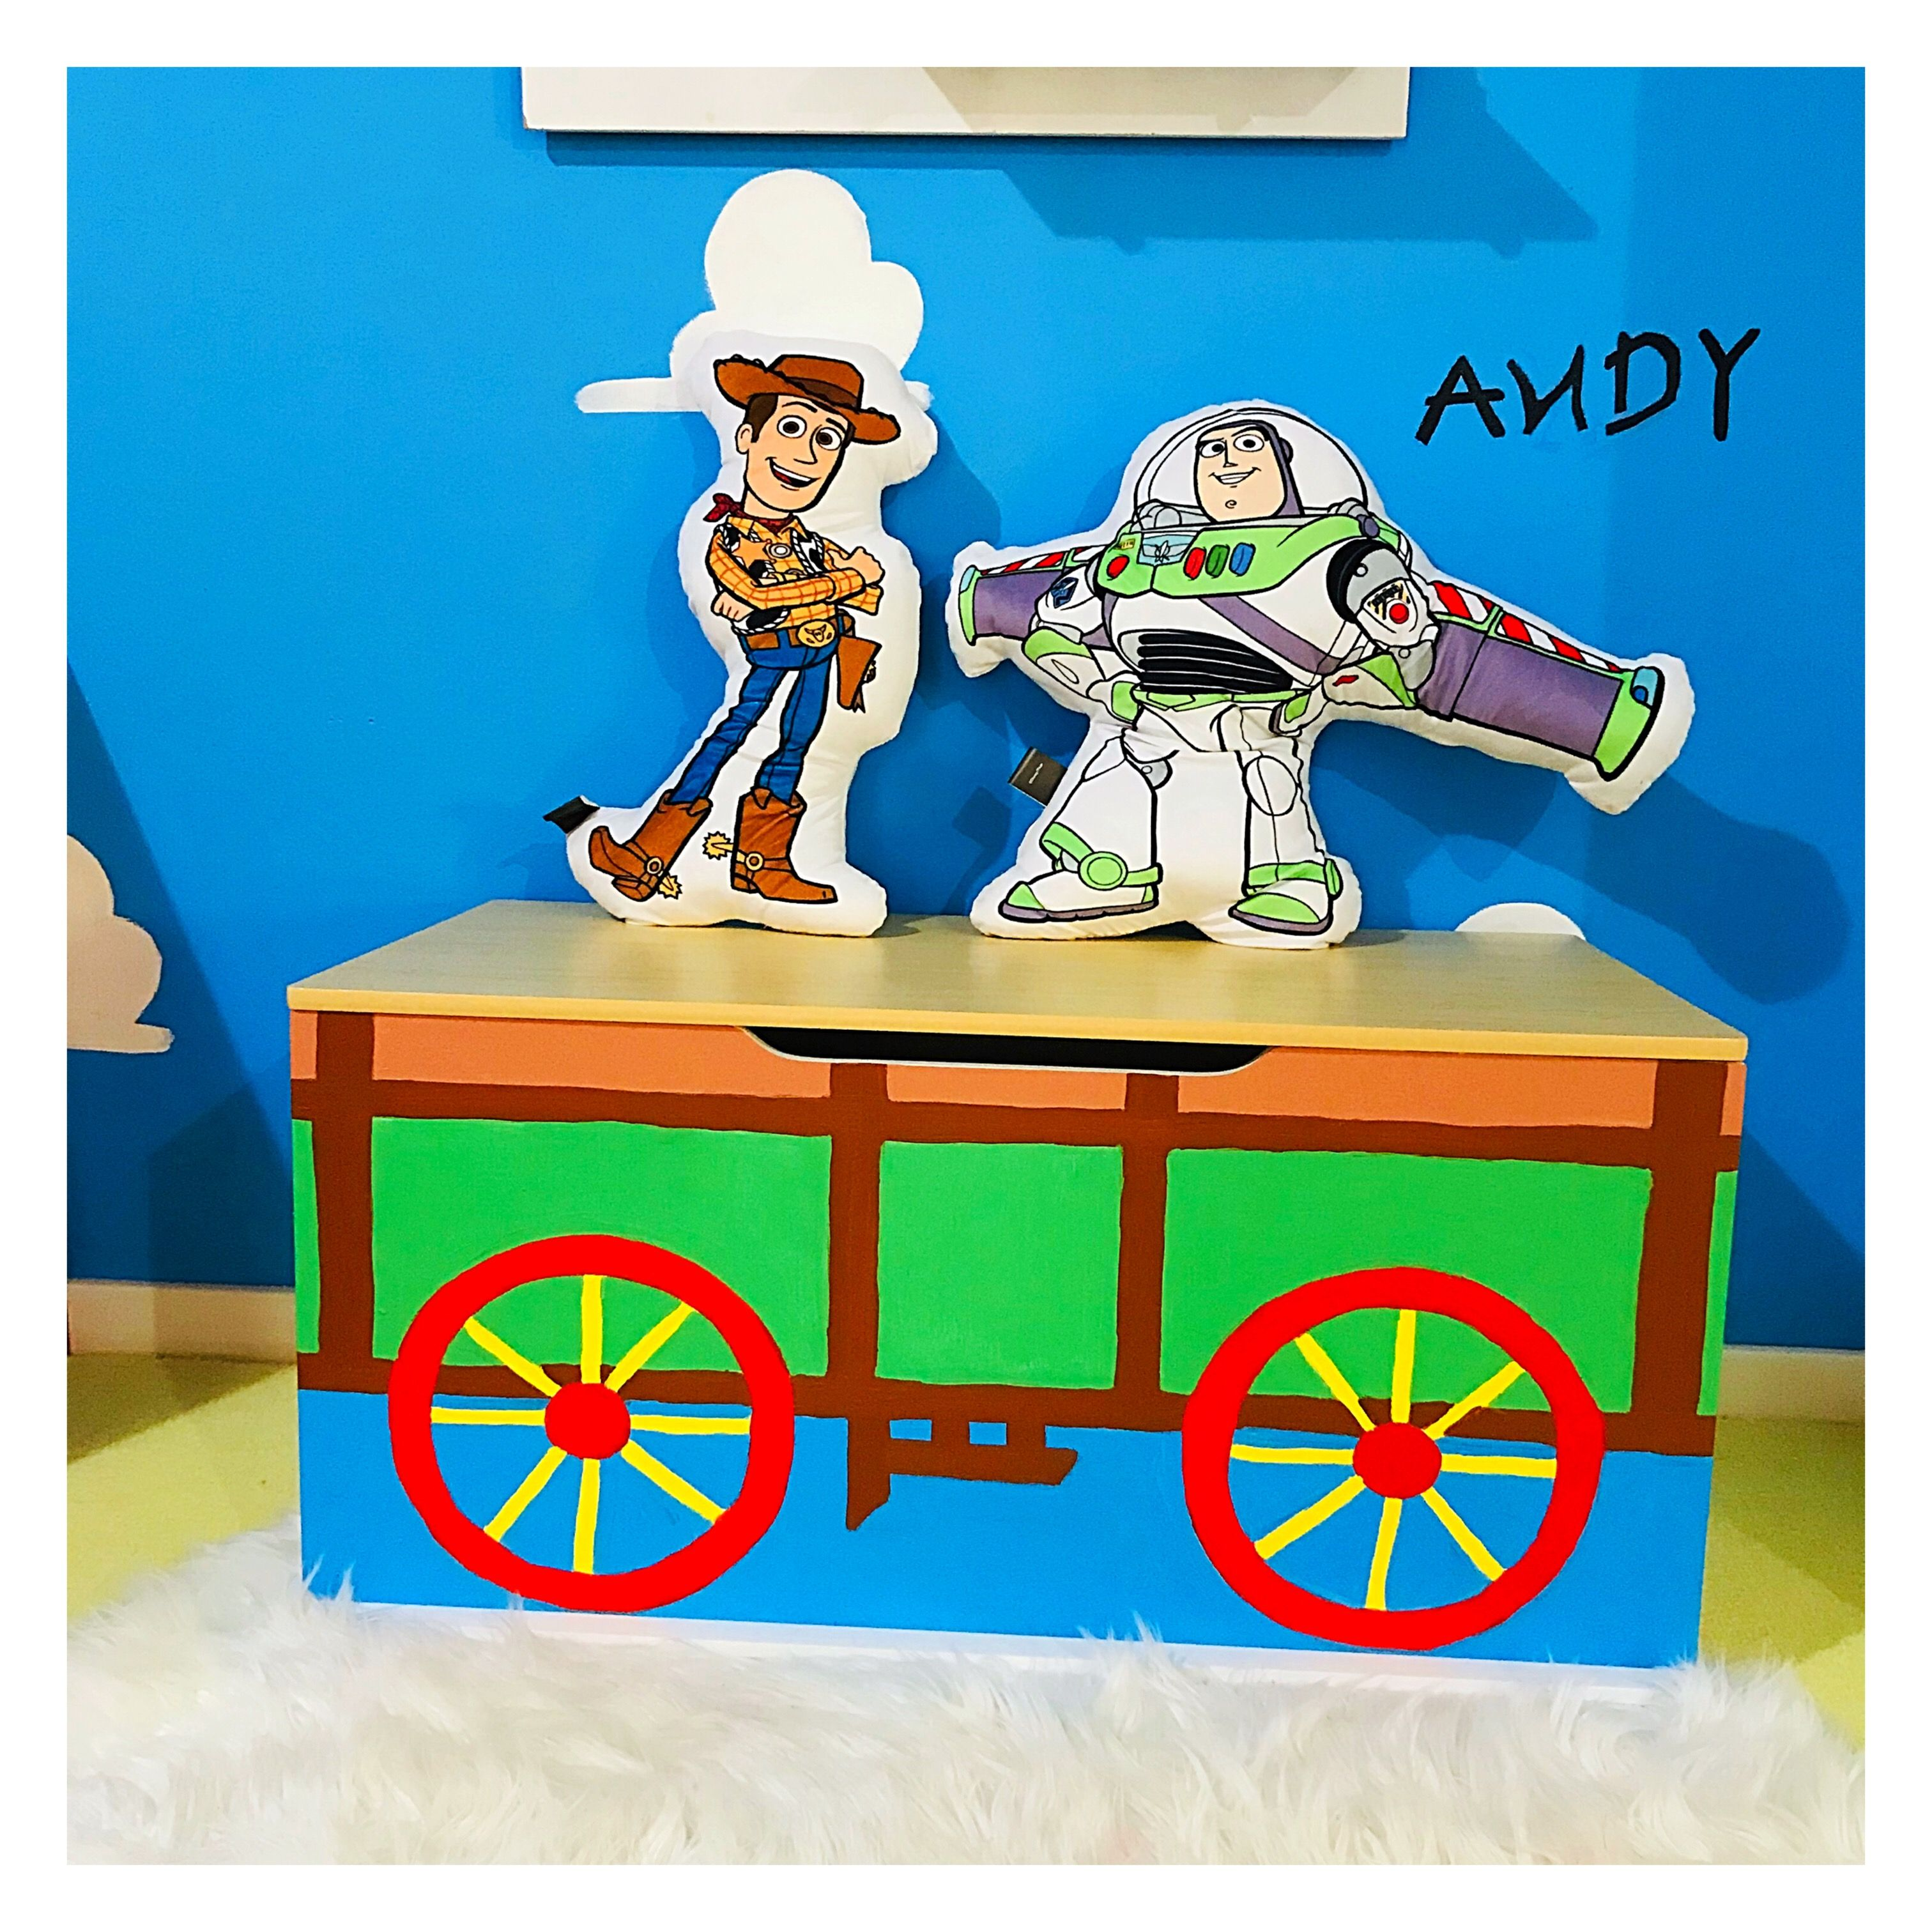 Andy S Toy Box Diy Toy Box Toy Story Nursery Toy Story Room